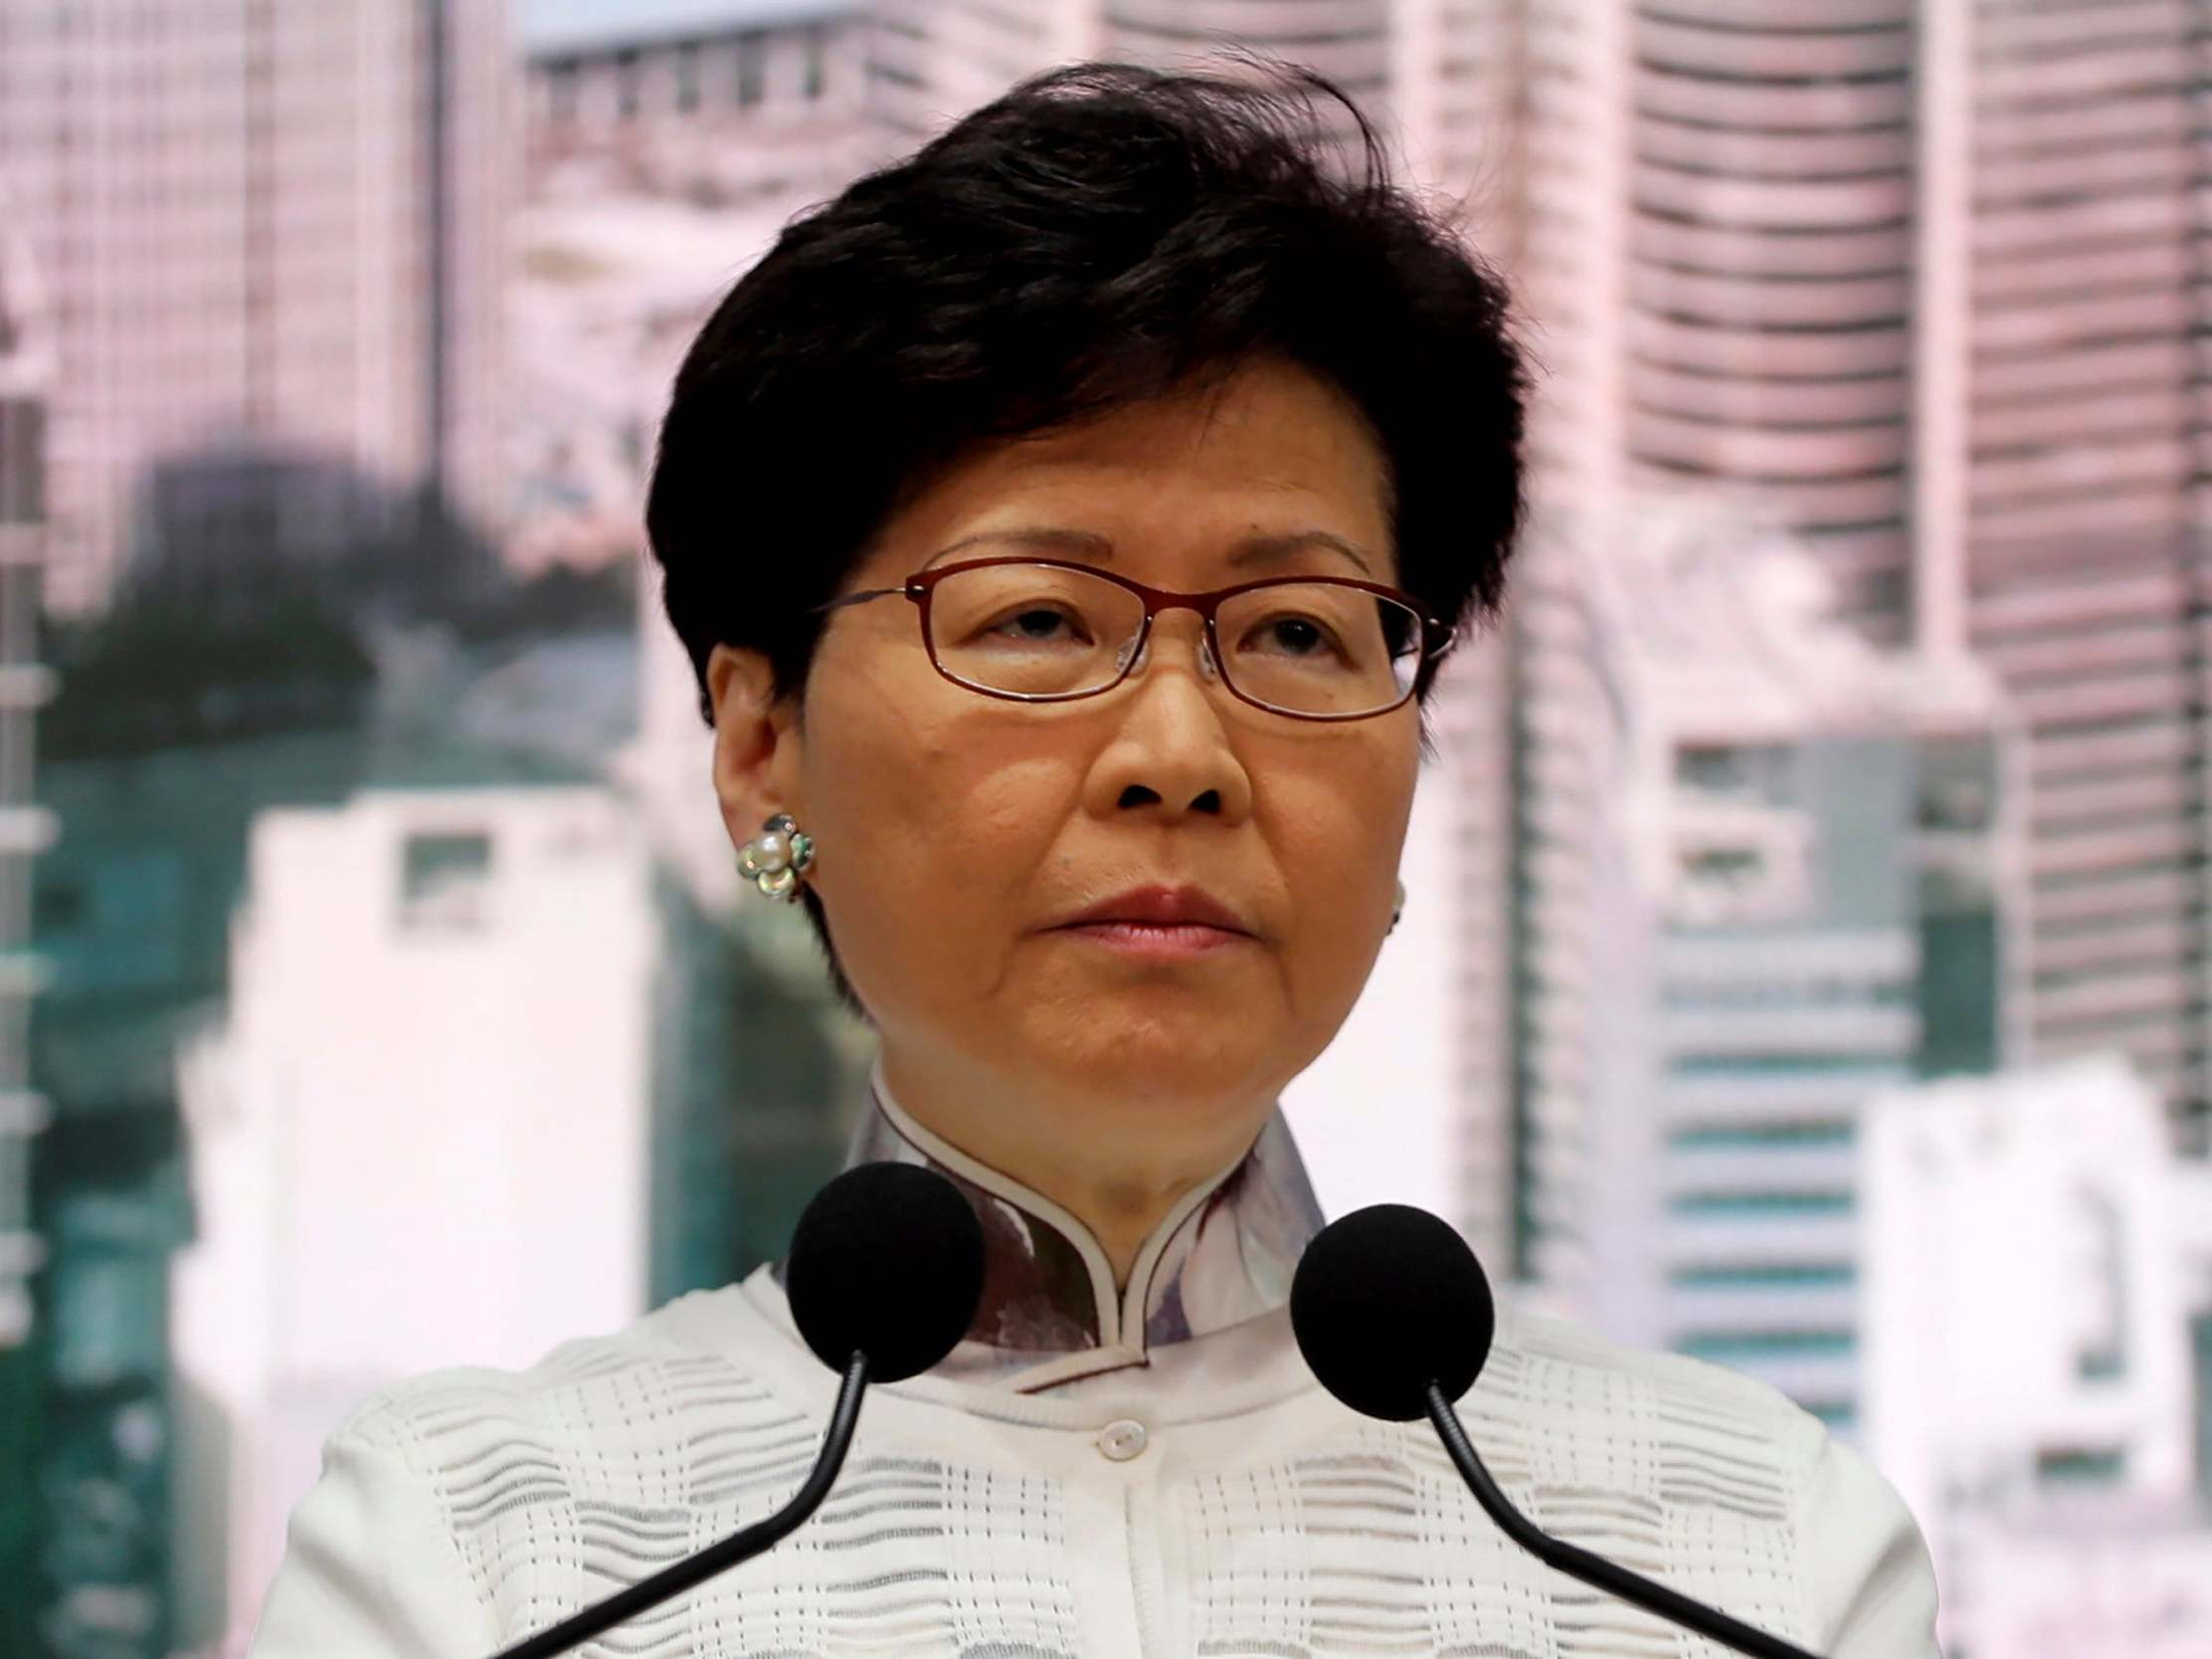 Hong Kong leader Carrie Lam suspends controversial China extradition bill after mass protests and violence